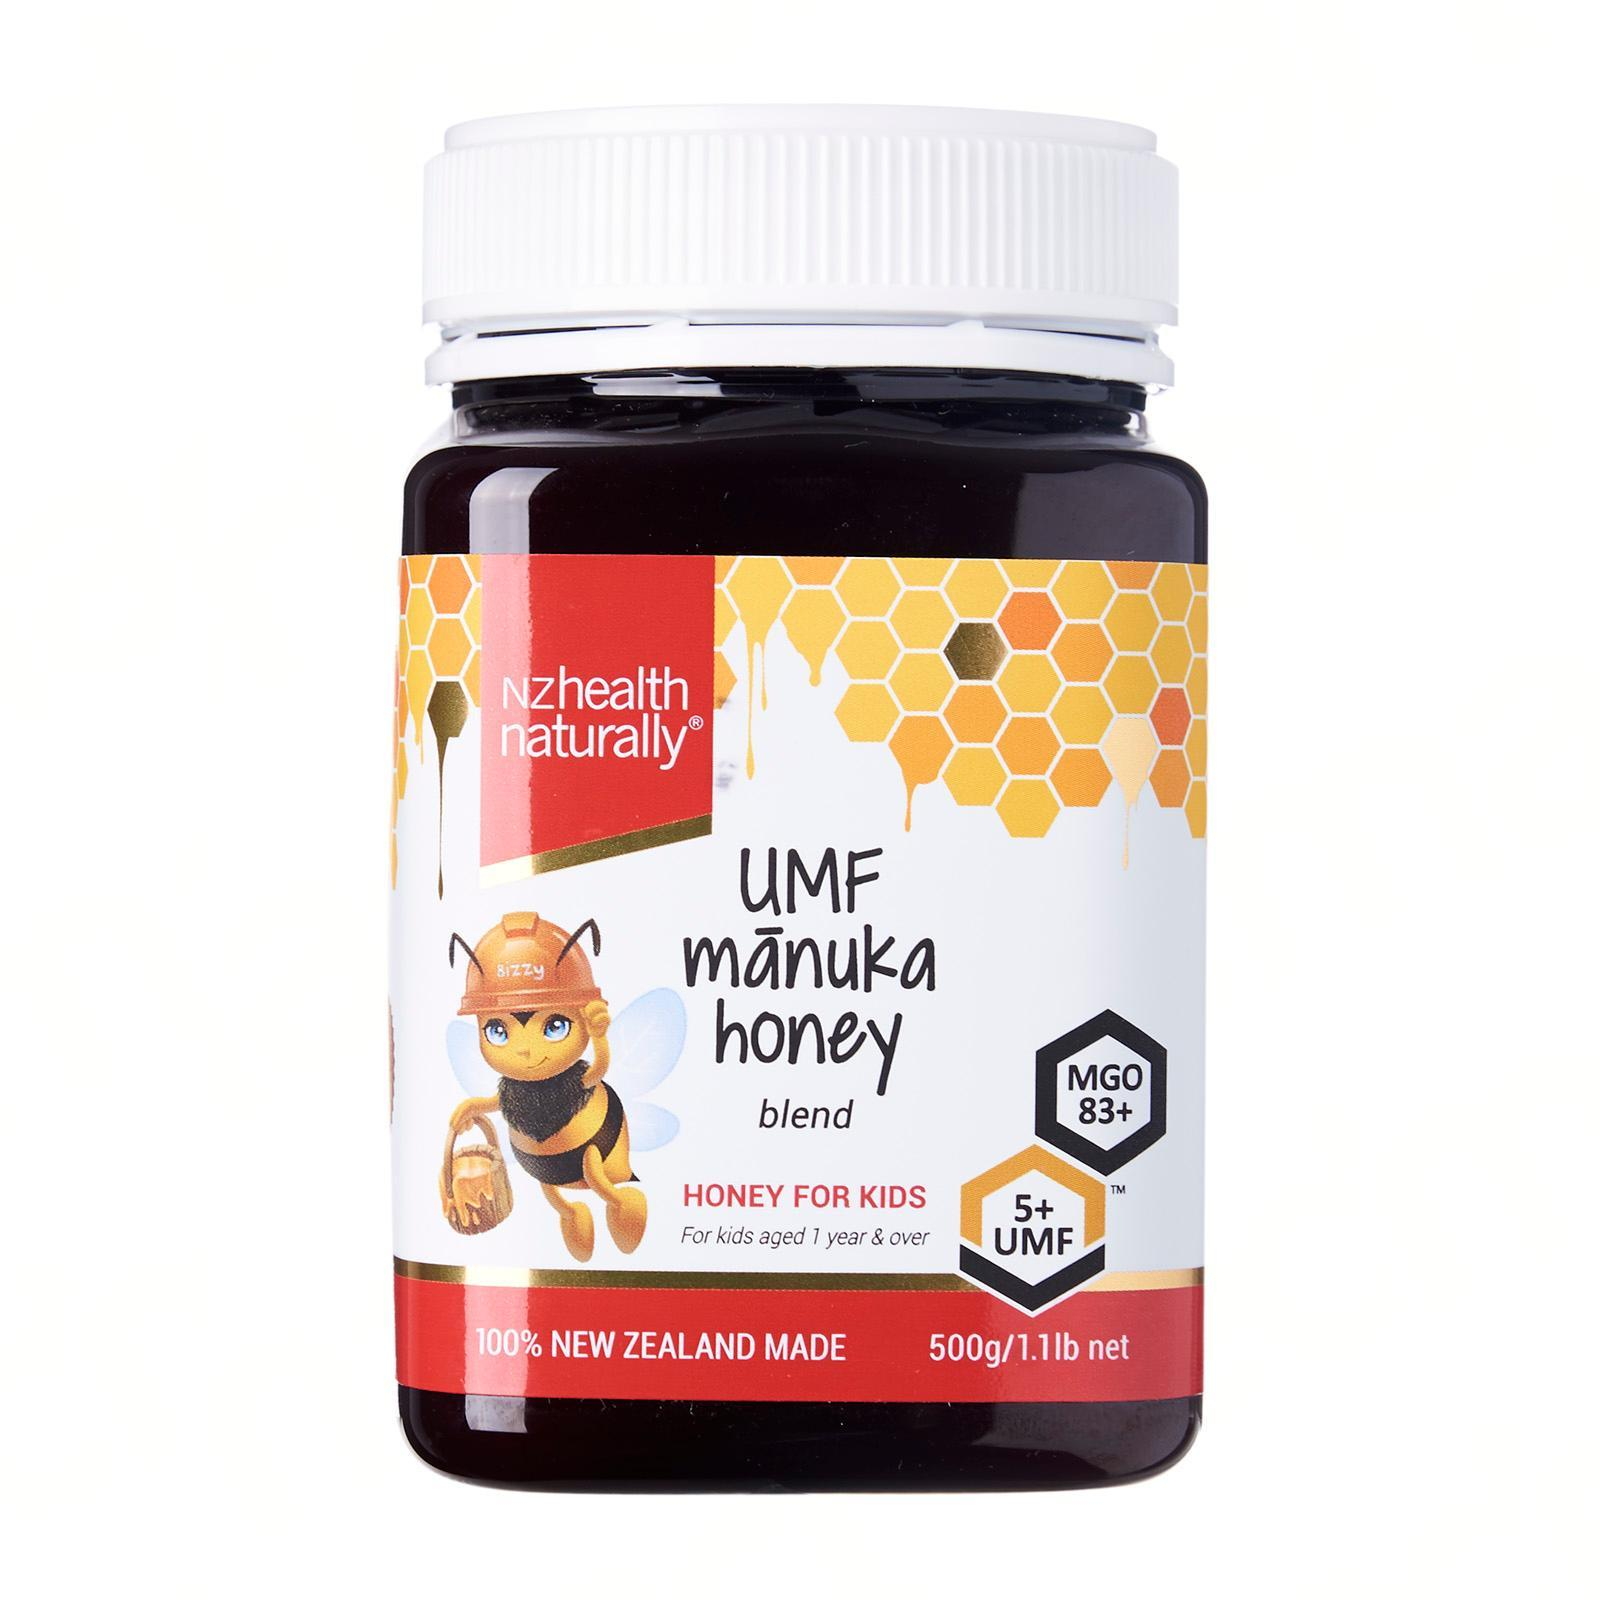 NZ Health Naturally Manuka Honey for Kids UMF 5+